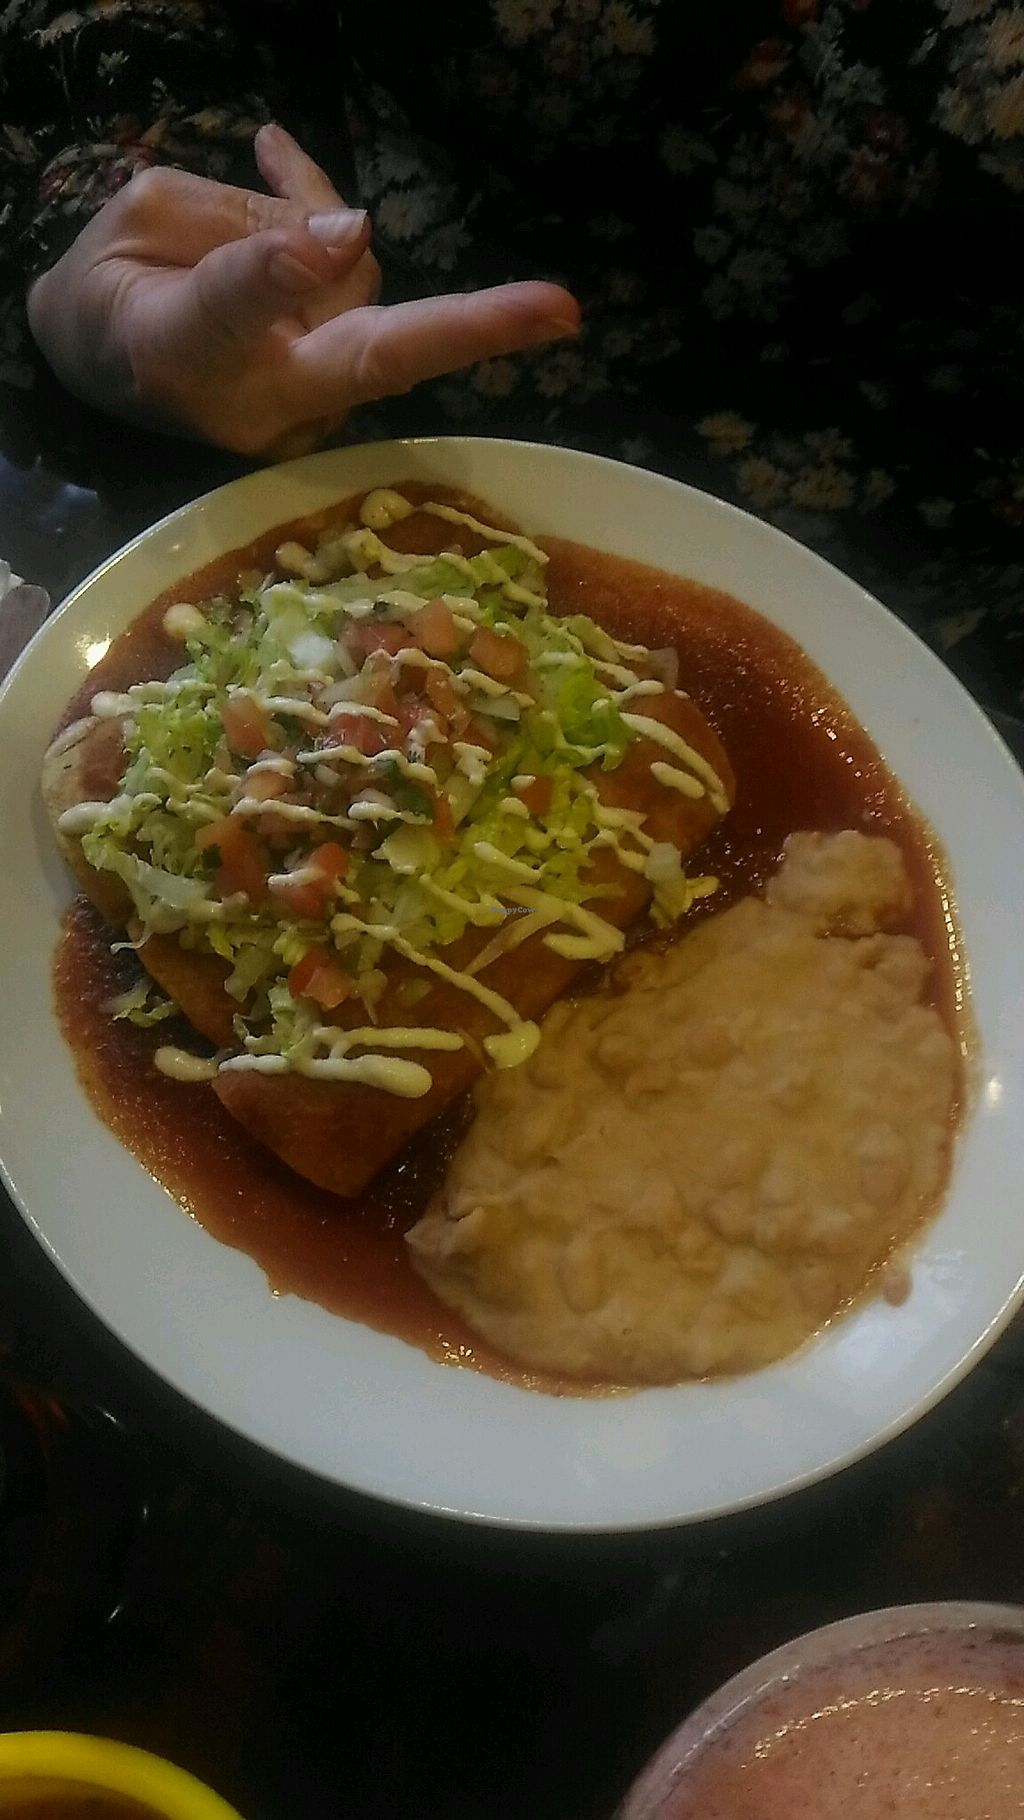 "Photo of Pancho's Kitchen  by <a href=""/members/profile/QuothTheRaven"">QuothTheRaven</a> <br/>vegan enchiladas <br/> March 26, 2018  - <a href='/contact/abuse/image/59571/376549'>Report</a>"